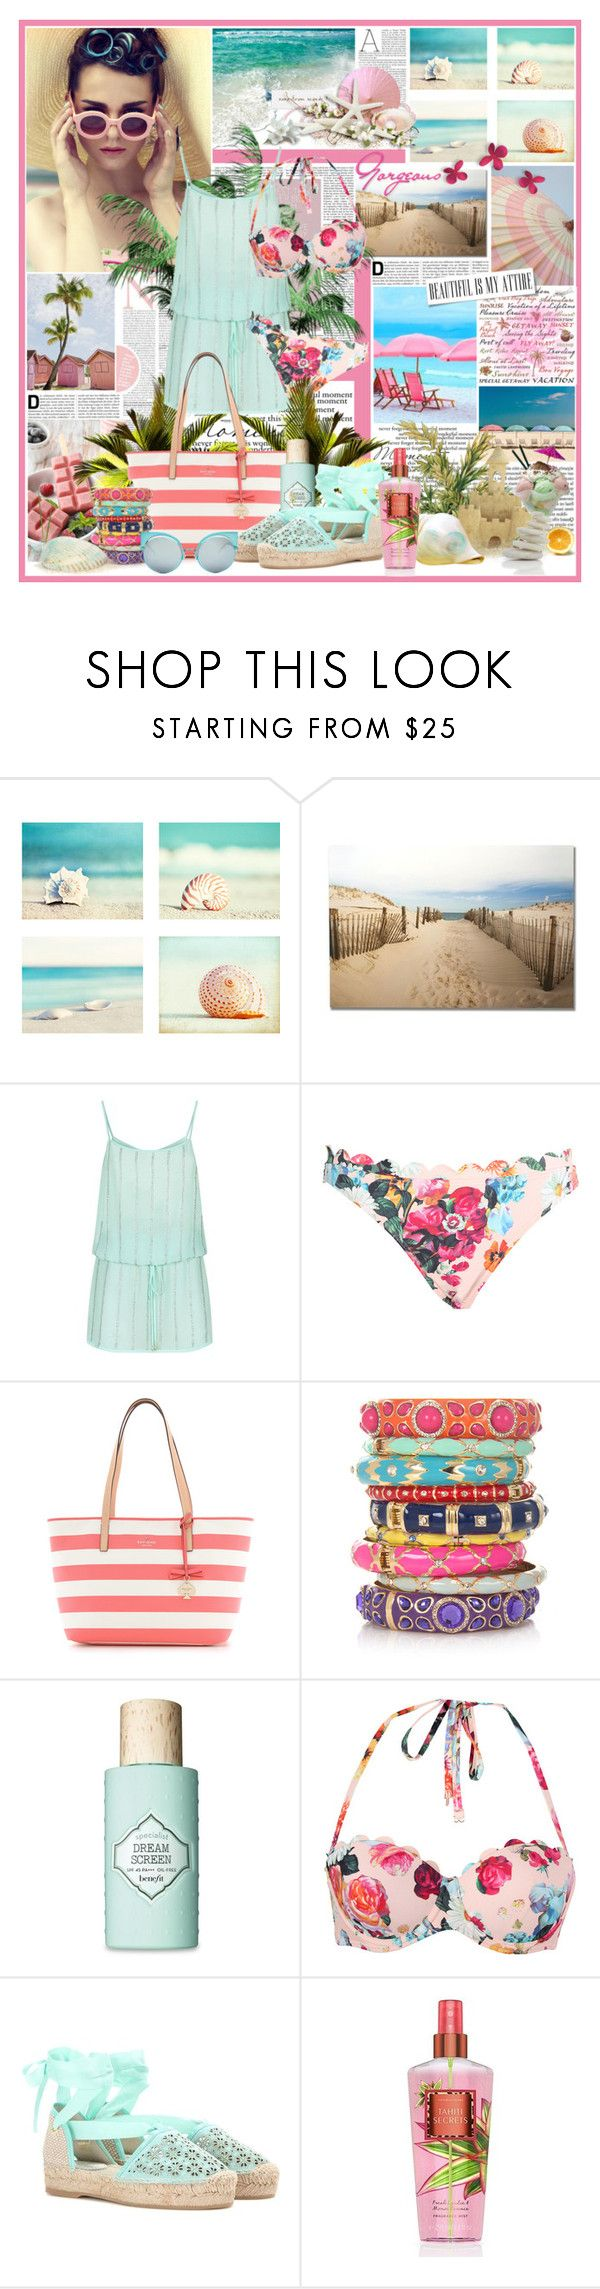 """*Take me to the Ocean*"" by lady231 ❤ liked on Polyvore featuring Nicole, Frankford, Graham & Brown, ELIZABETH HURLEY beach, Ted Baker, Kate Spade, Sequin, Benefit, Costa and Oscar de la Renta"